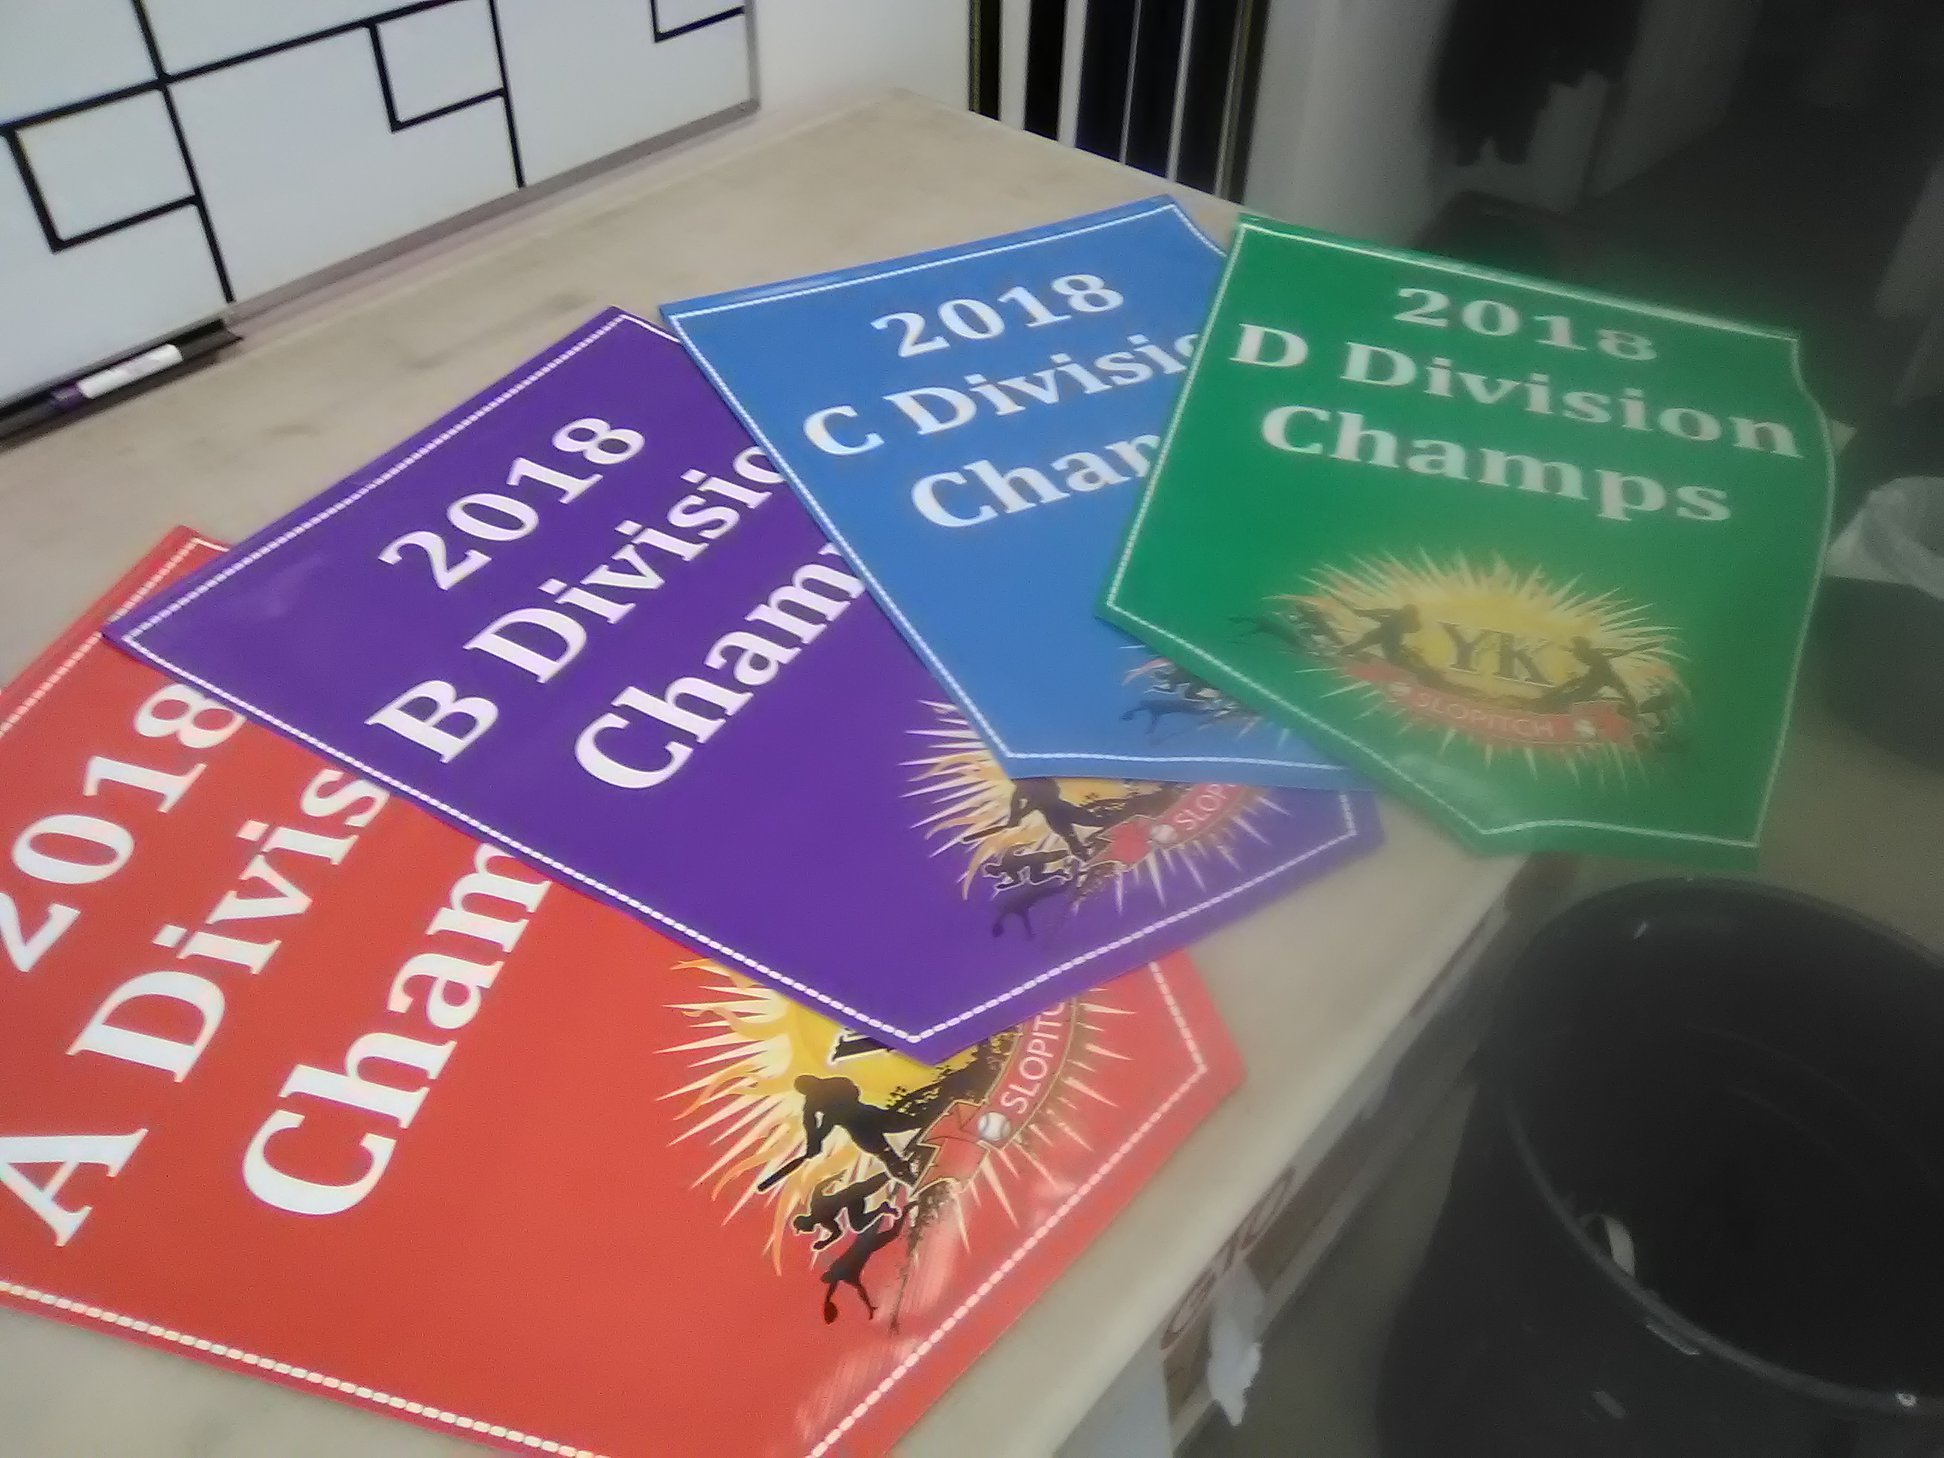 YK Slo Pitch Division Champ Signage